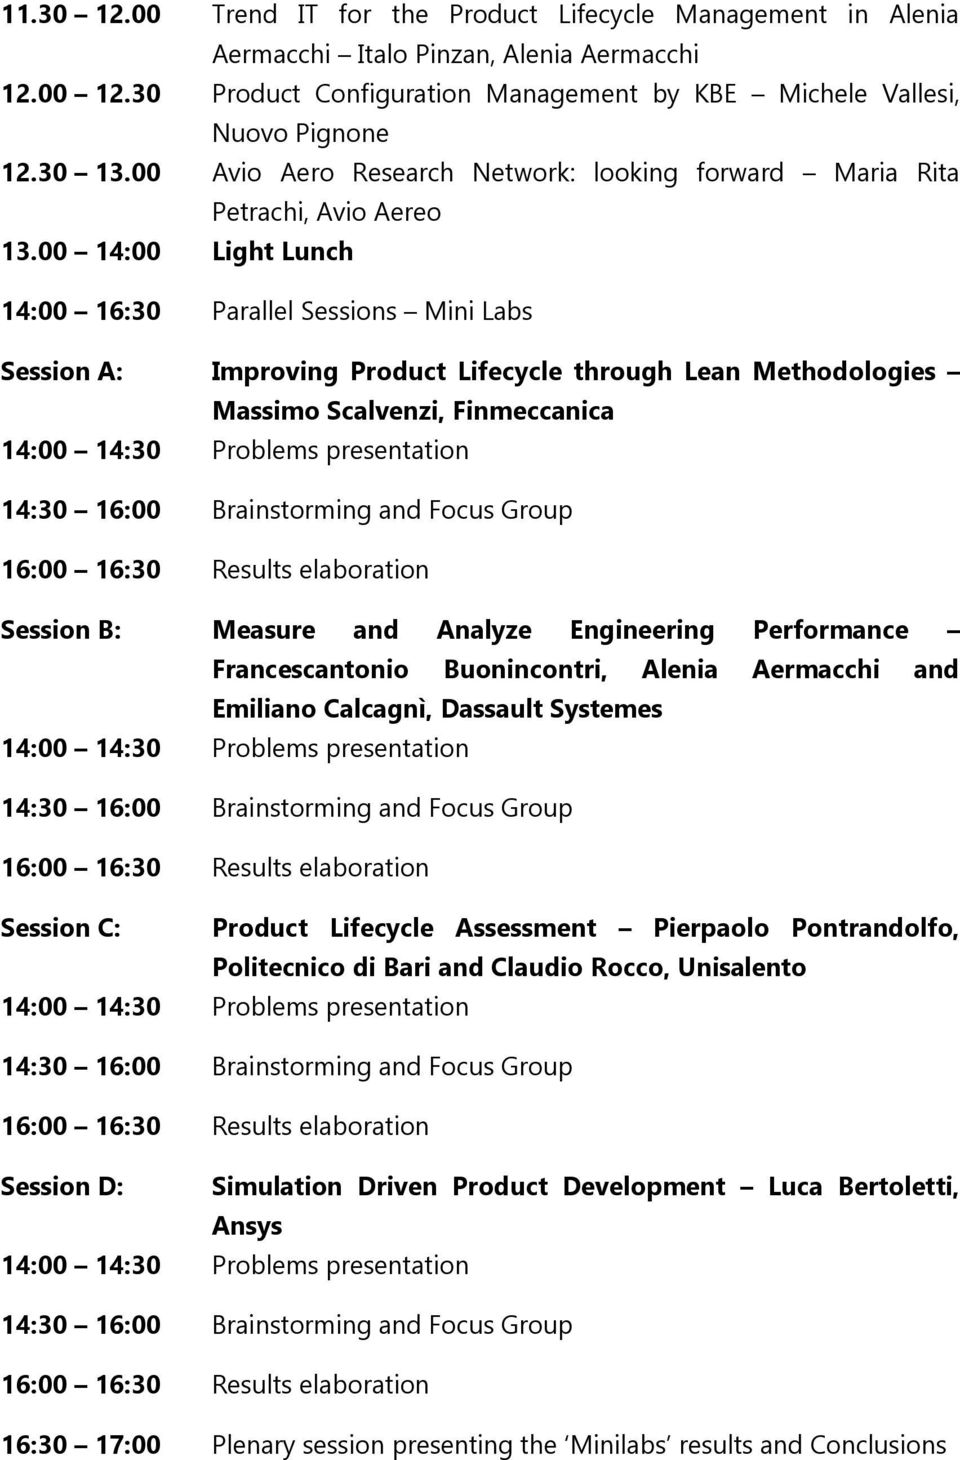 00 14:00 Light Lunch 14:00 16:30 Parallel Sessions Mini Labs Session A: Improving Product Lifecycle through Lean Methodologies Massimo Scalvenzi, Finmeccanica Session B: Measure and Analyze